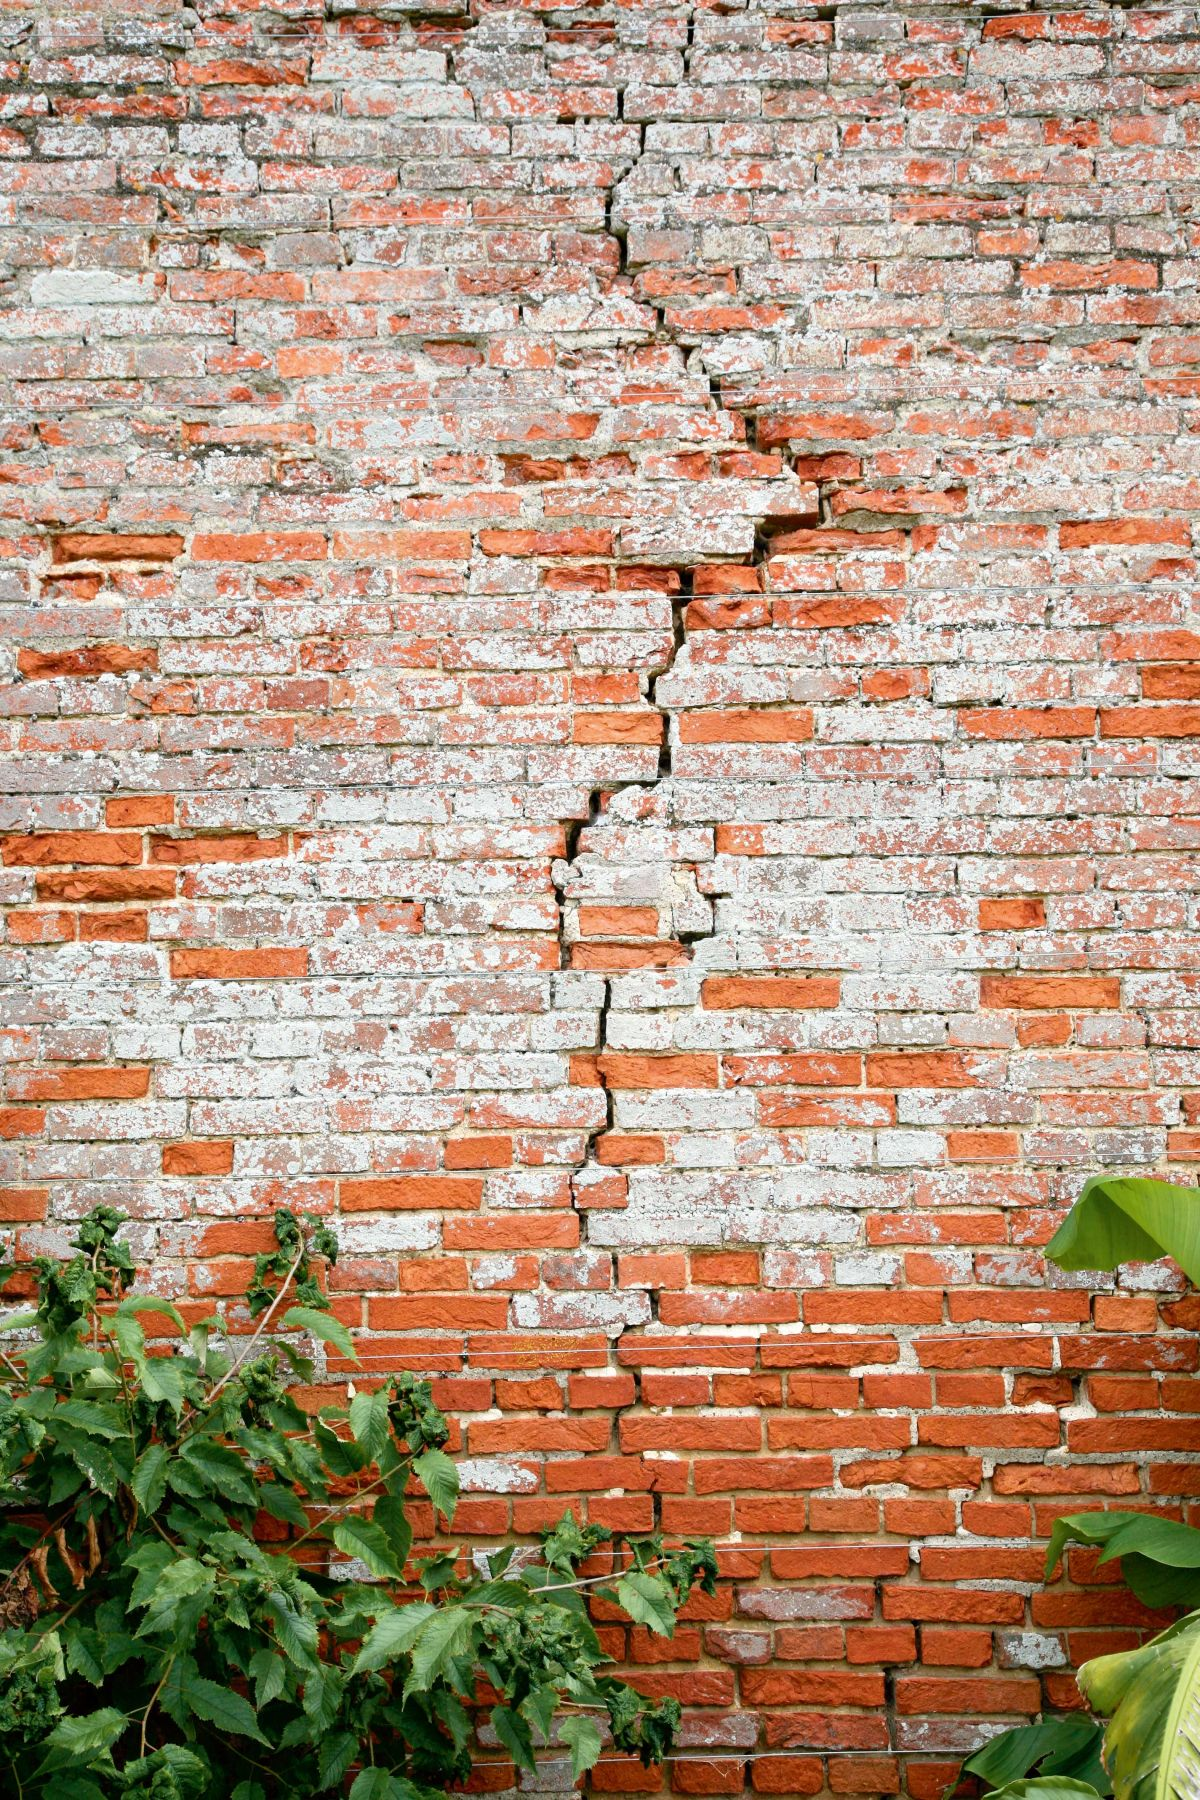 How To Deal With Cracks In Walls And Structural Problems